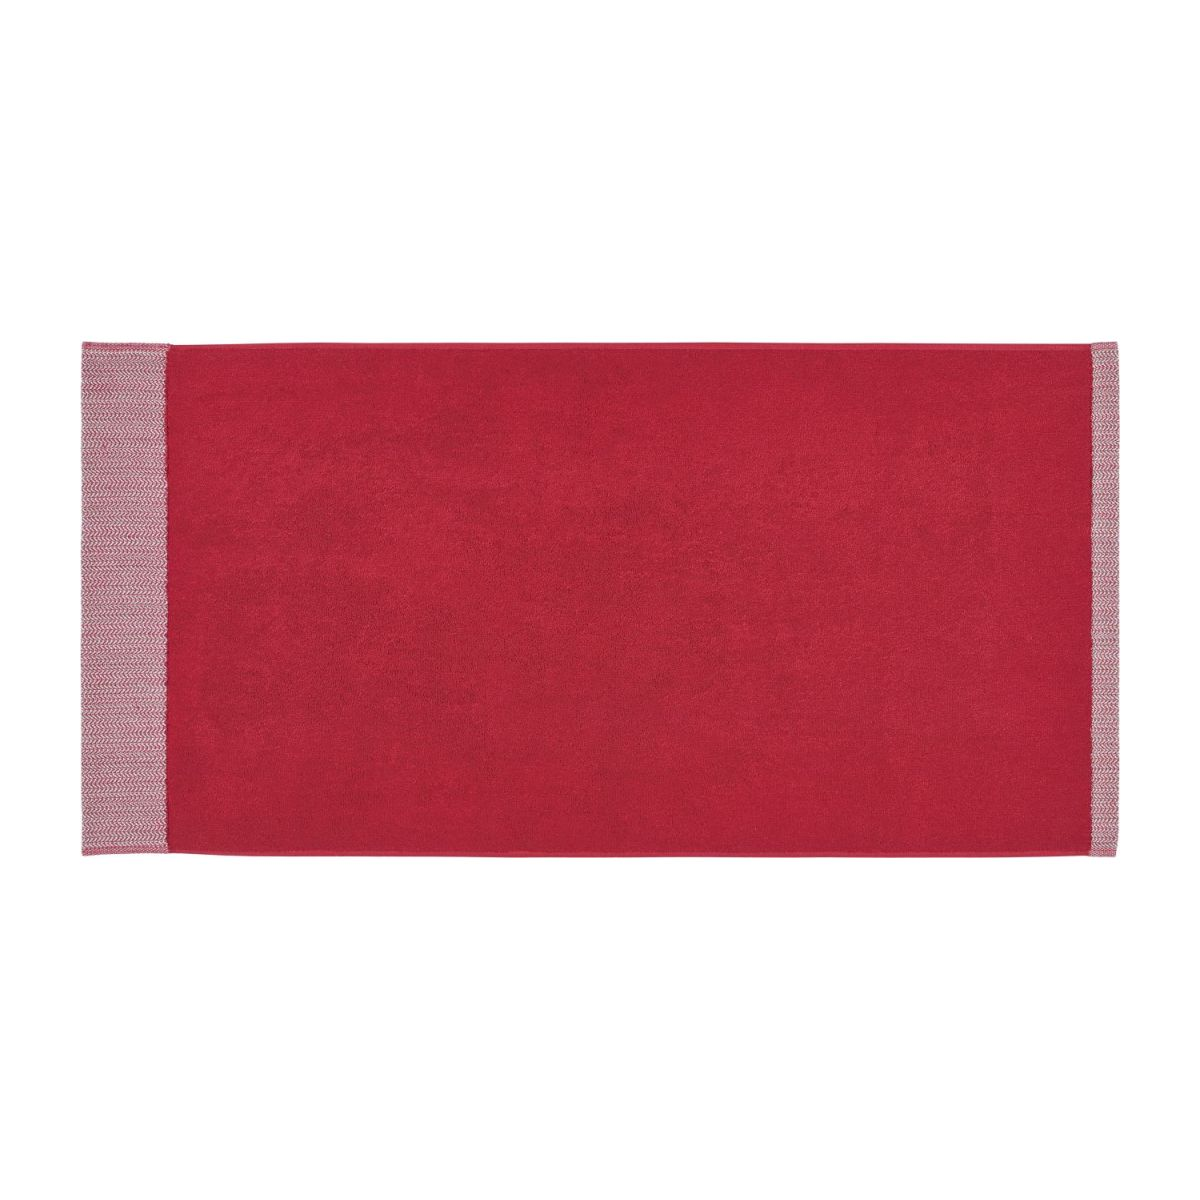 Bath towel made of cotton 50x100, red n°2